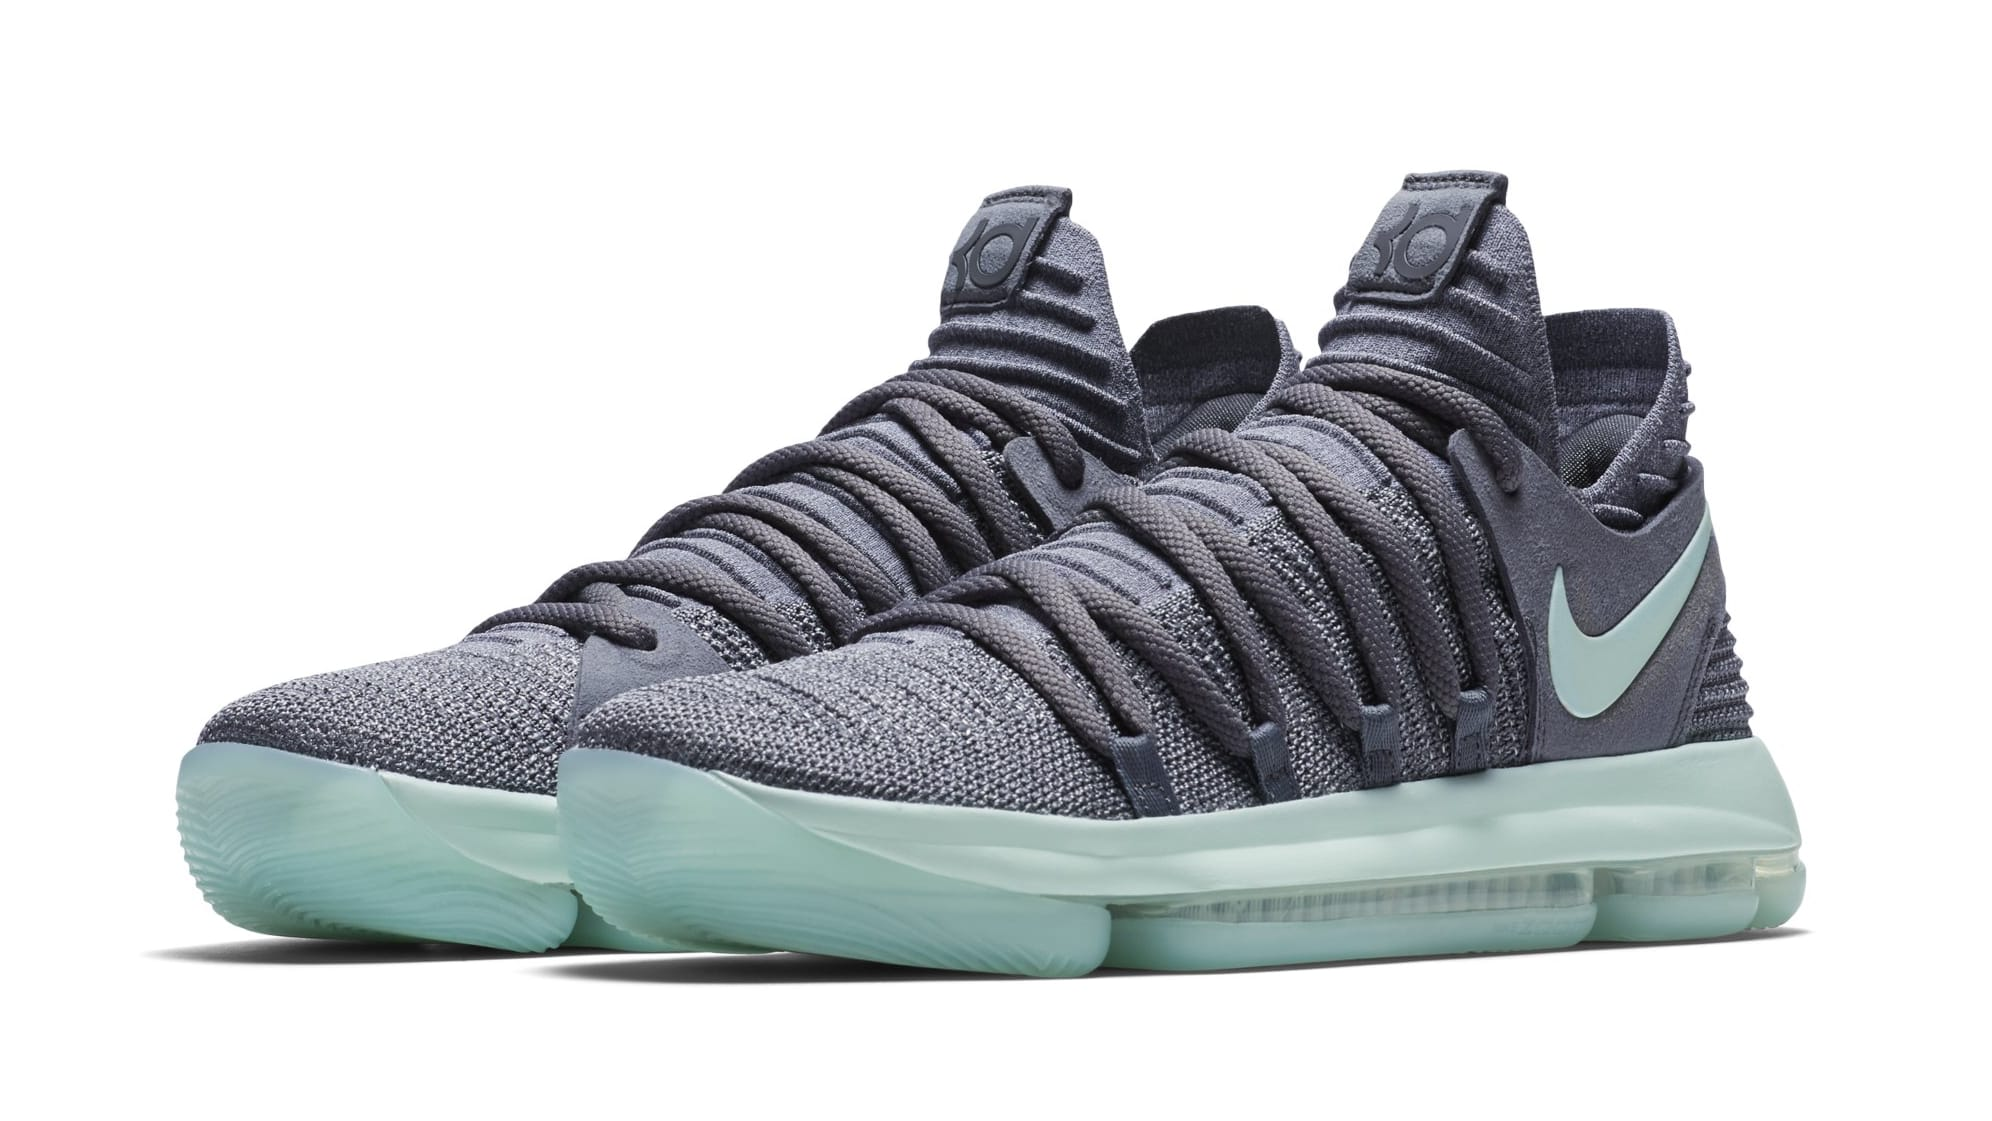 Nike KD 10 Glow In Dark White Shoes